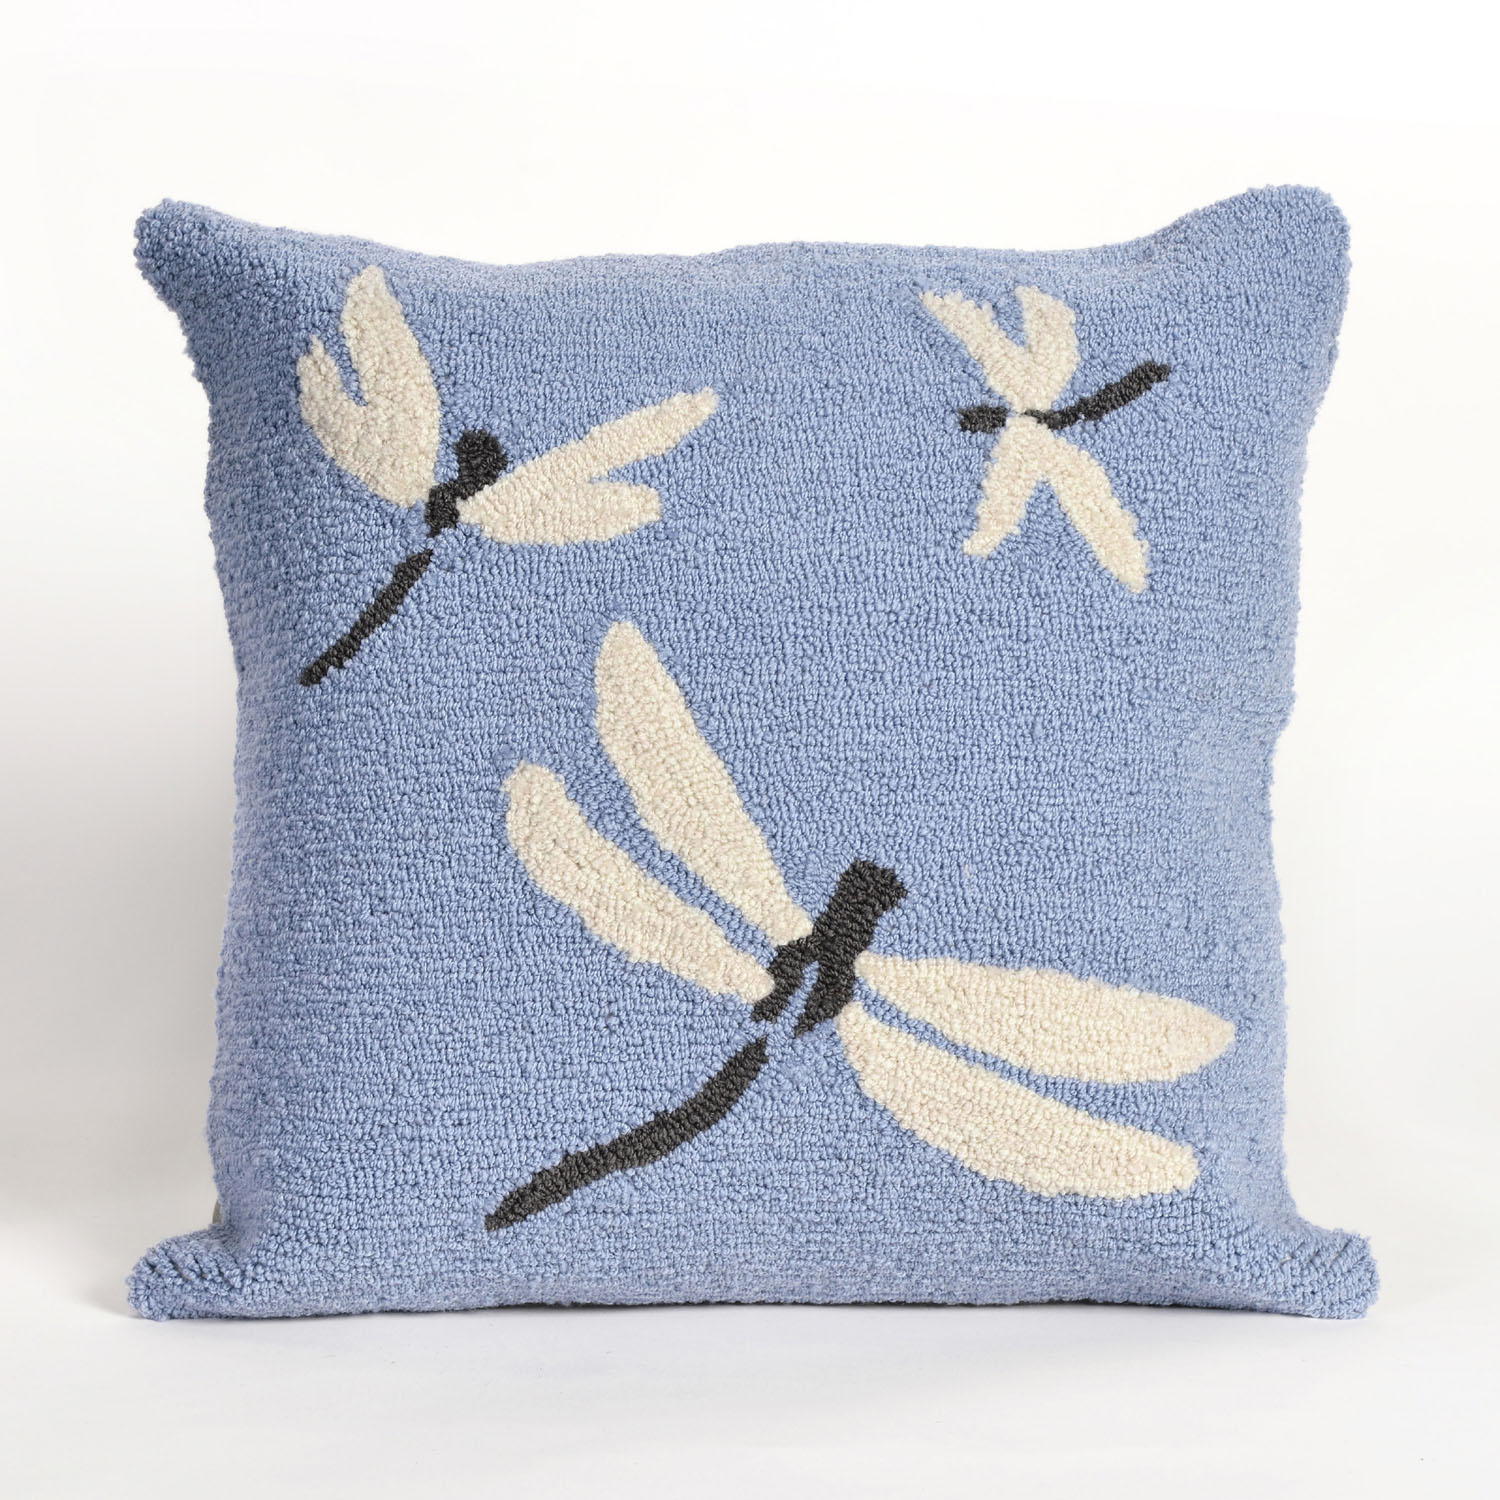 Frontporch Dragonfly Pillow-Color:Blue